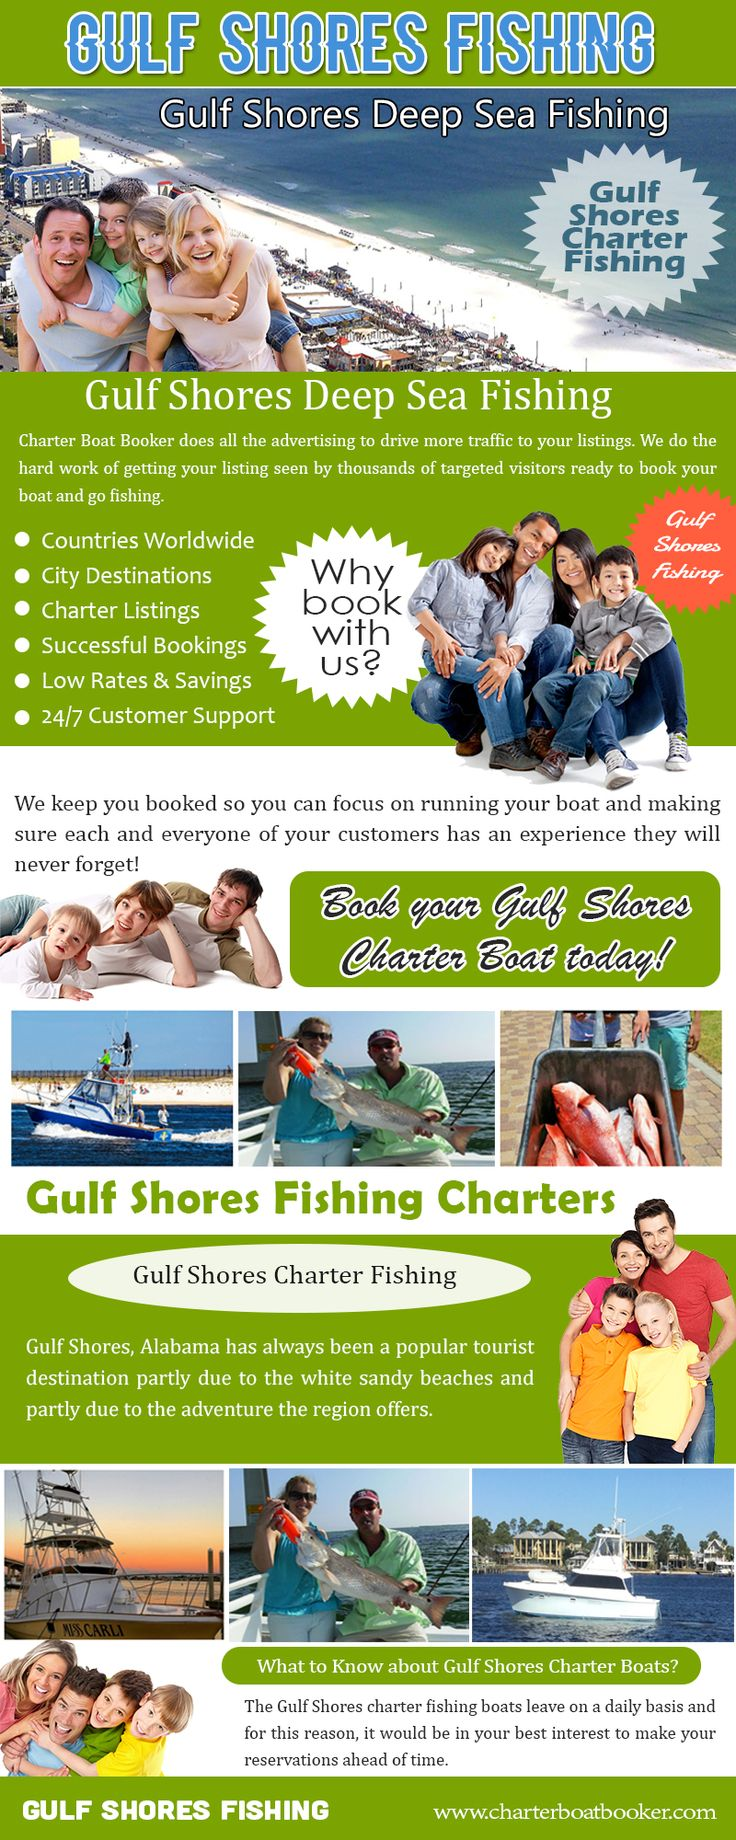 Check this link right here https://www.charterboatbooker.com/location/united-states/alabama/gulf-shores-charter-boats/ for more information on Gulf Shores Deep Sea Fishing. Gulf Shores Deep Sea Fishing Charter Boats be available in all sizes and shapes to fit any potential sea traveler, weekend break pirate, or fabulous fish killer - or anybody else that enjoys boating. These are different advantages of a charter boat which you could experience by employing one.